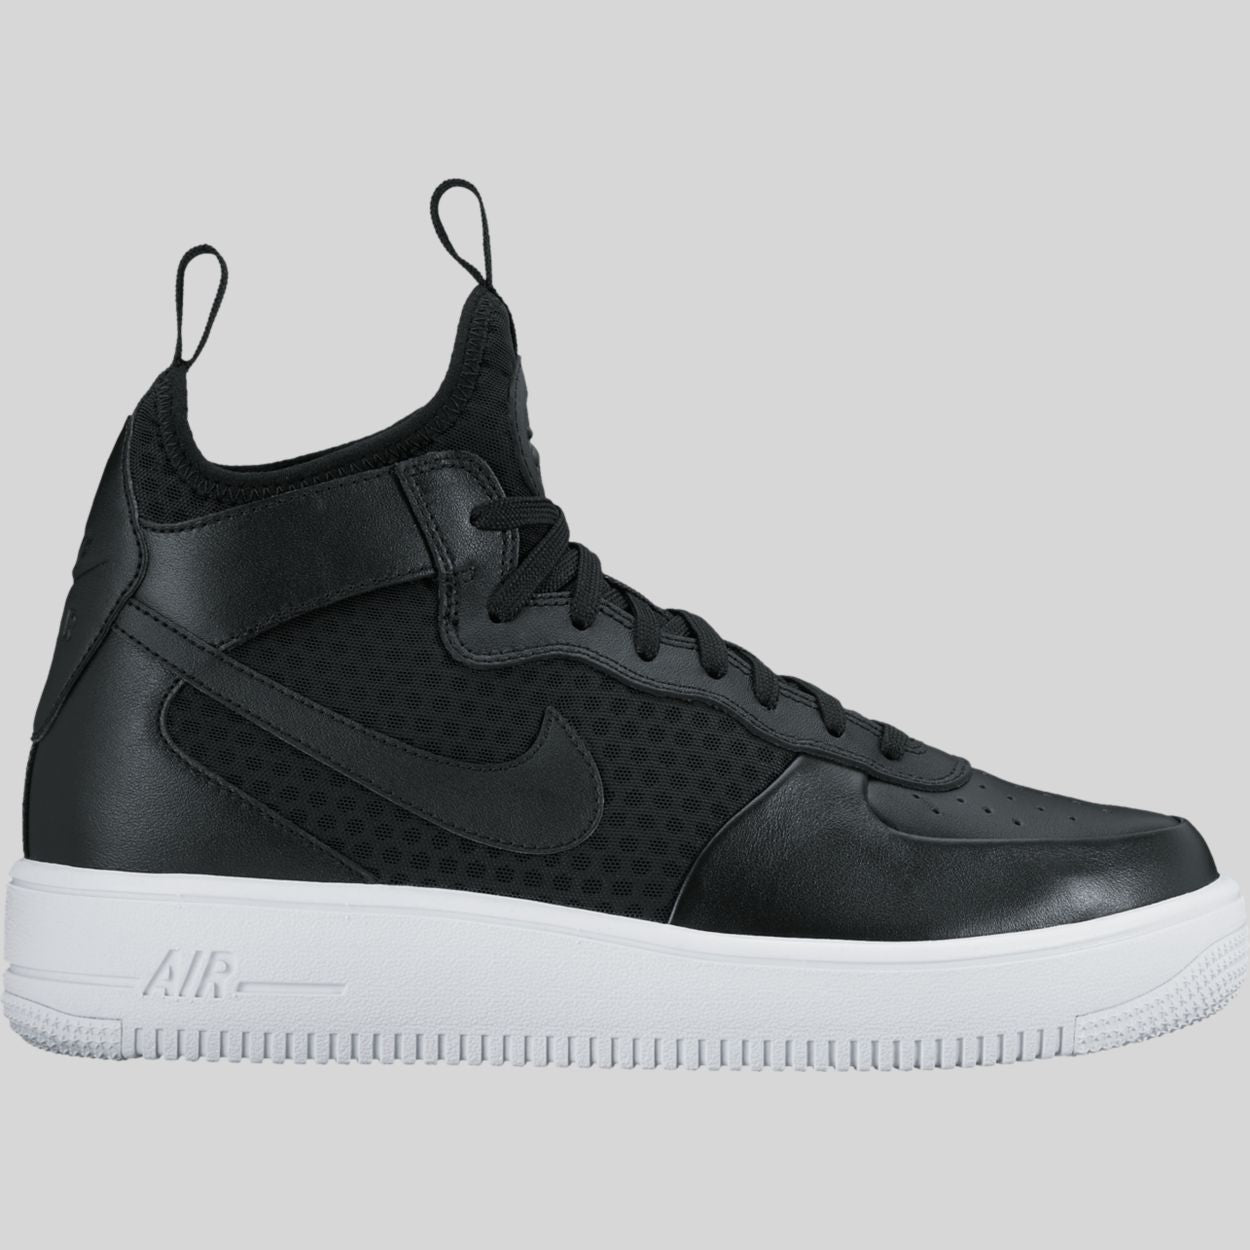 2c3d33667614 Nike AIR FORCE 1 ULTRAFORCE MID Black Black White (864014-001)